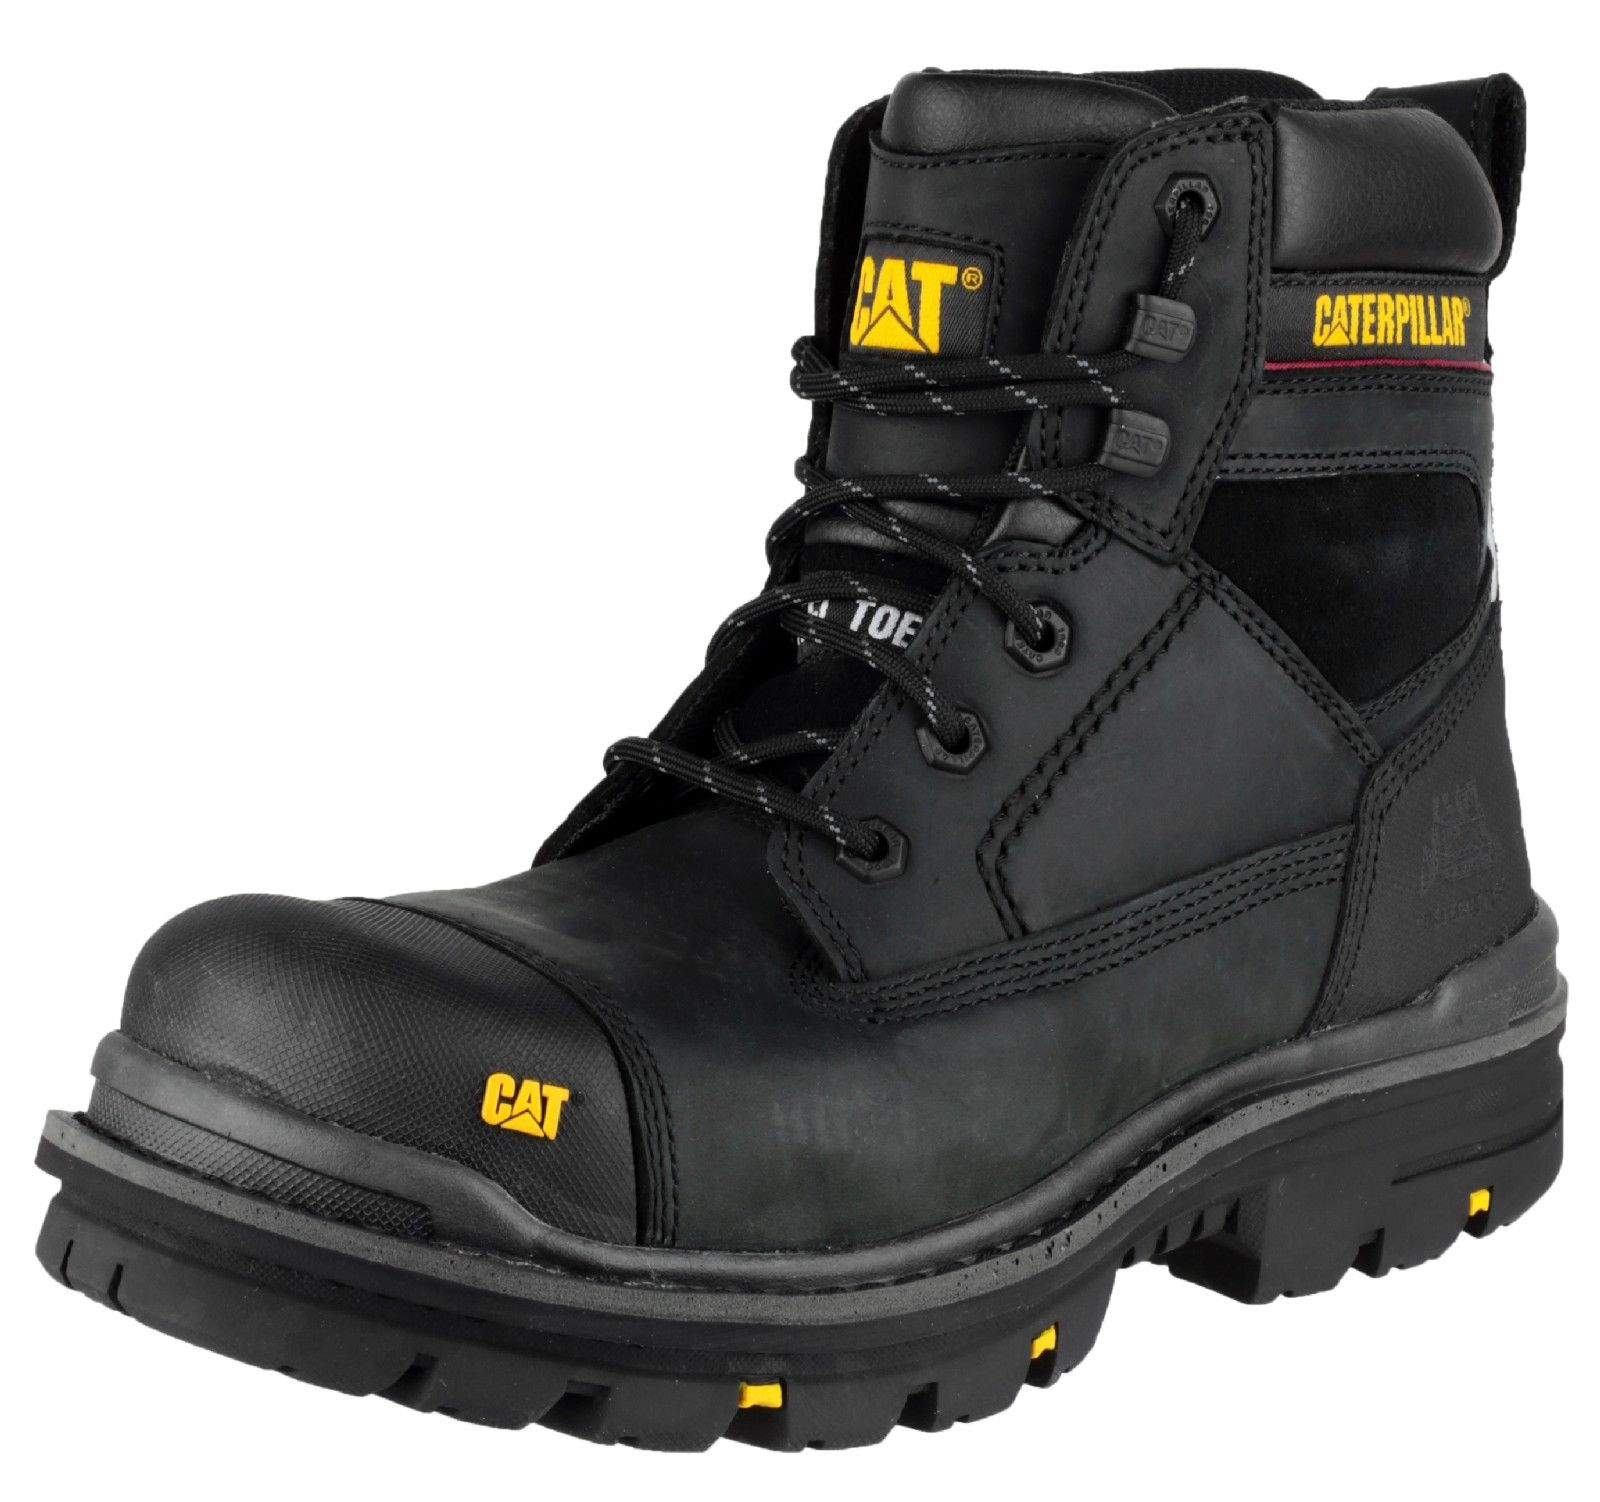 Black Waterproof Boots Men